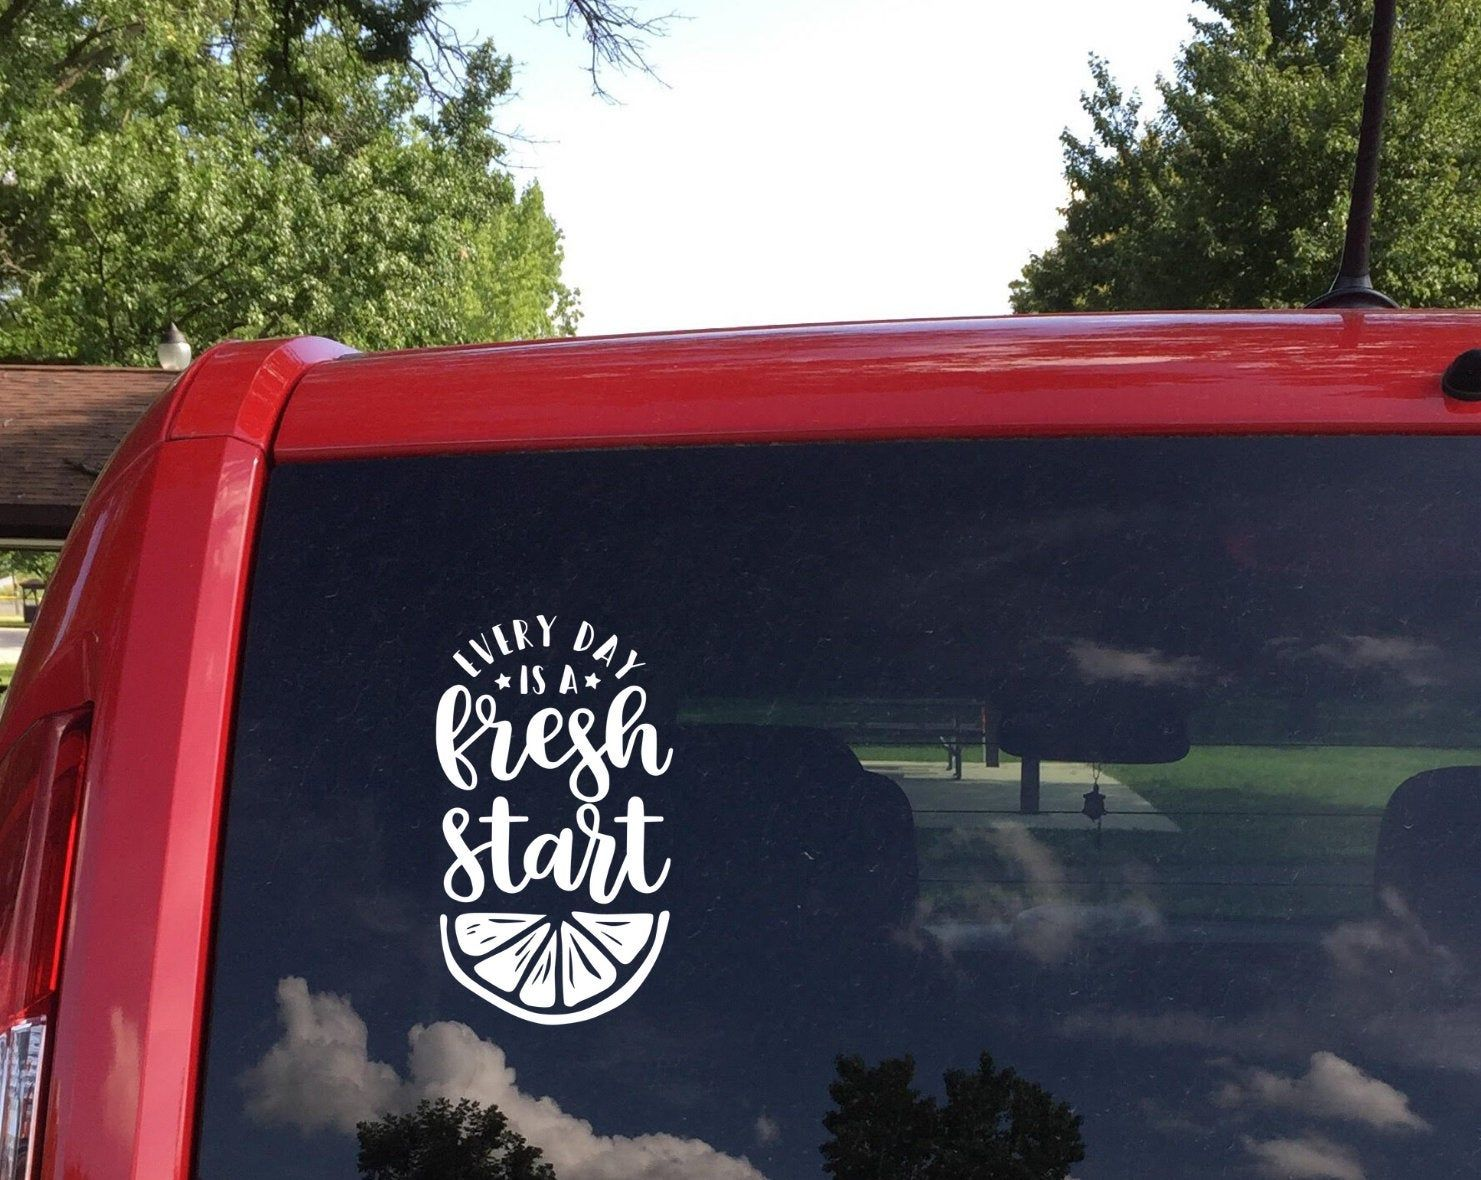 Every Day Is A Fresh Start Car Decal Decals For Cars Car Etsy Car Decals Bumper Stickers Car Accessories [ 1180 x 1481 Pixel ]